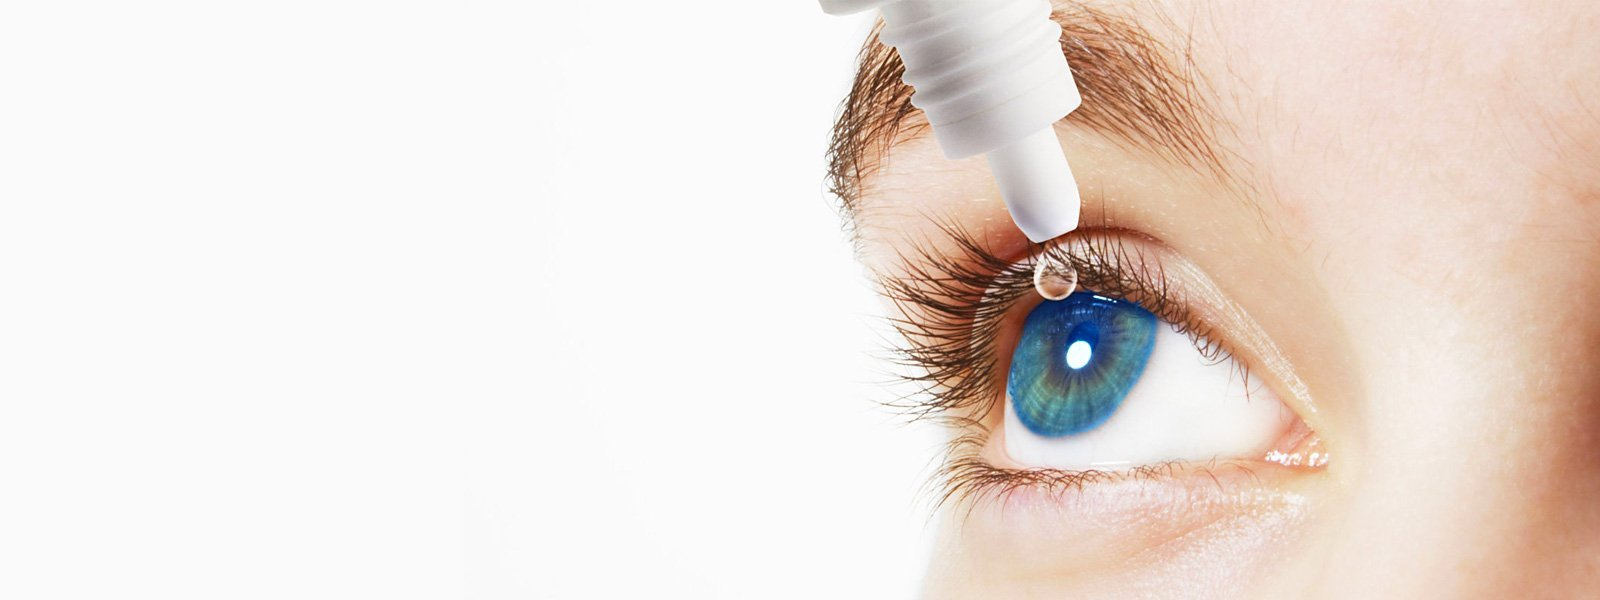 Top 10 Japanese Eye Drops in 2019